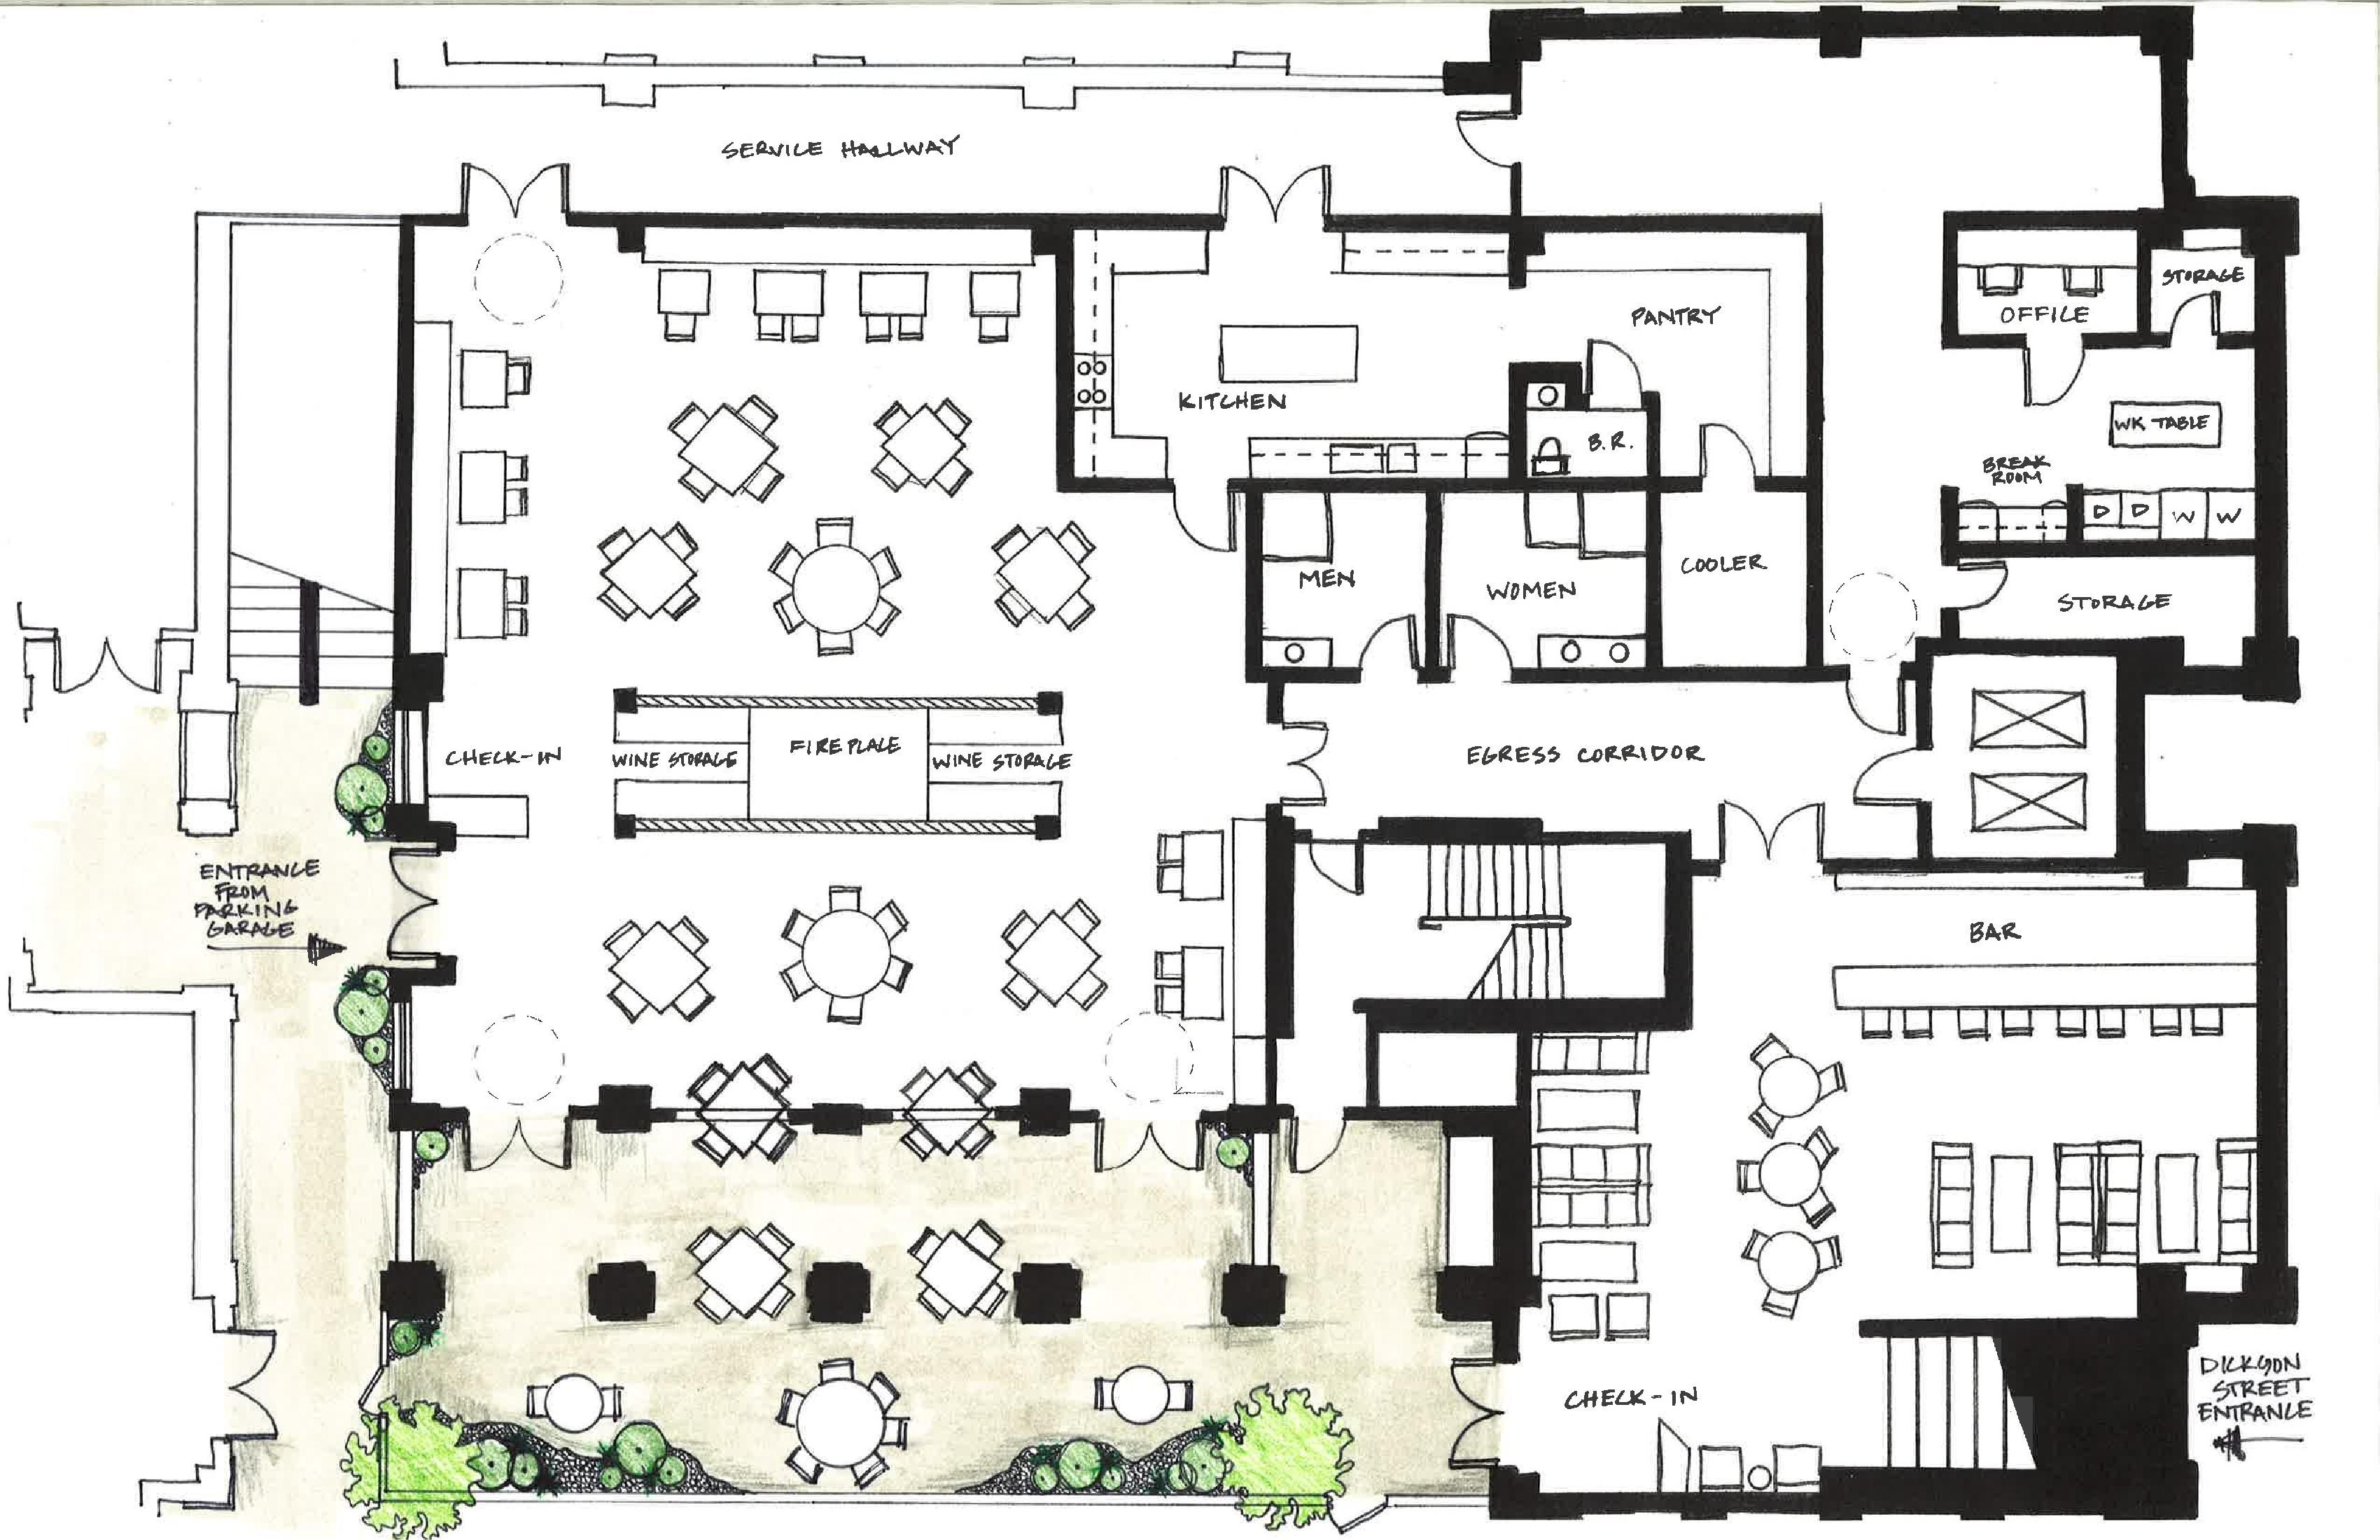 Architecture design inspired by f plan for Hotel design layout